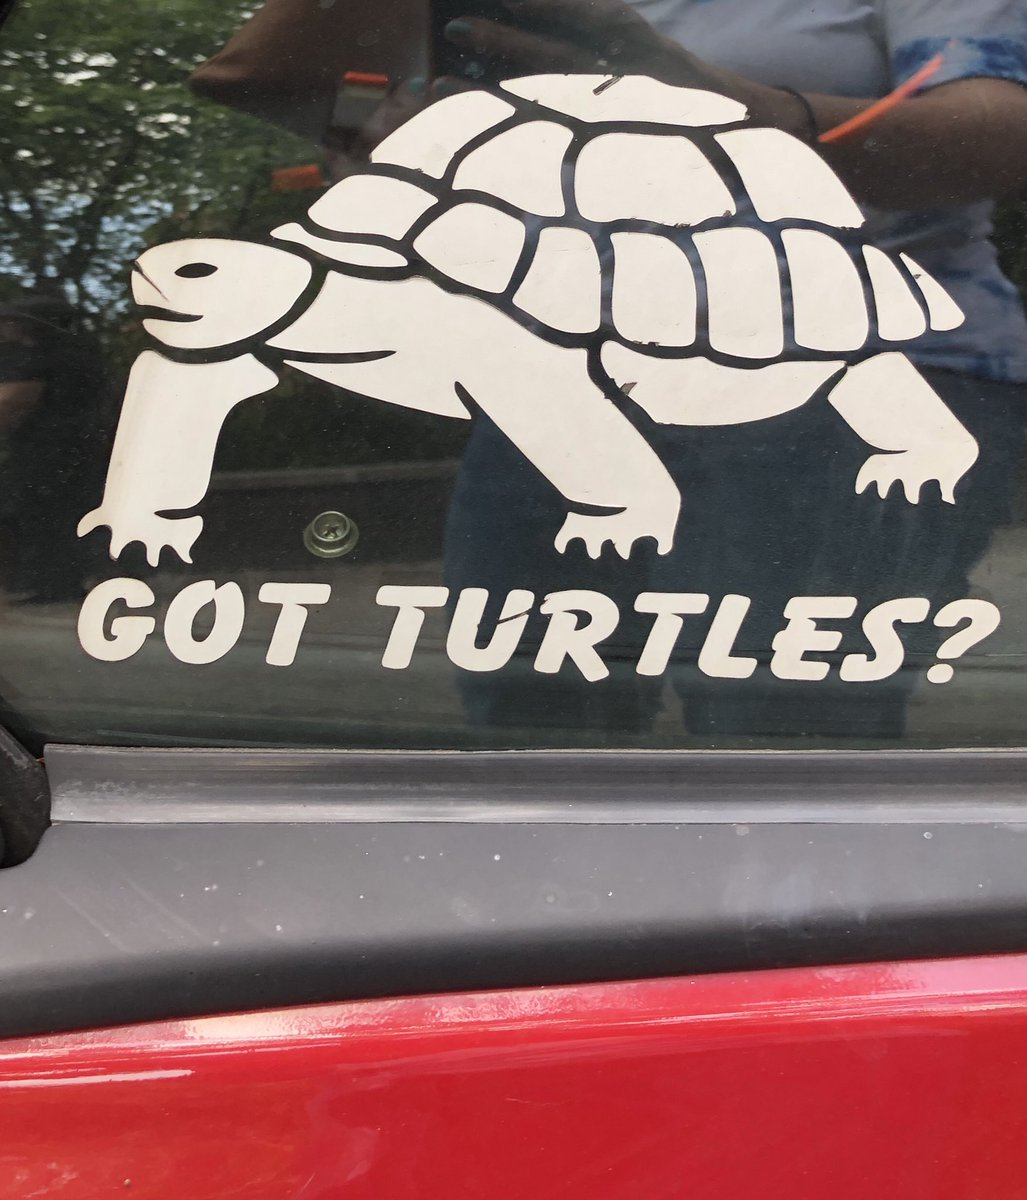 just-saw-this-car-sticker-https-t-co-iphykb6gqm